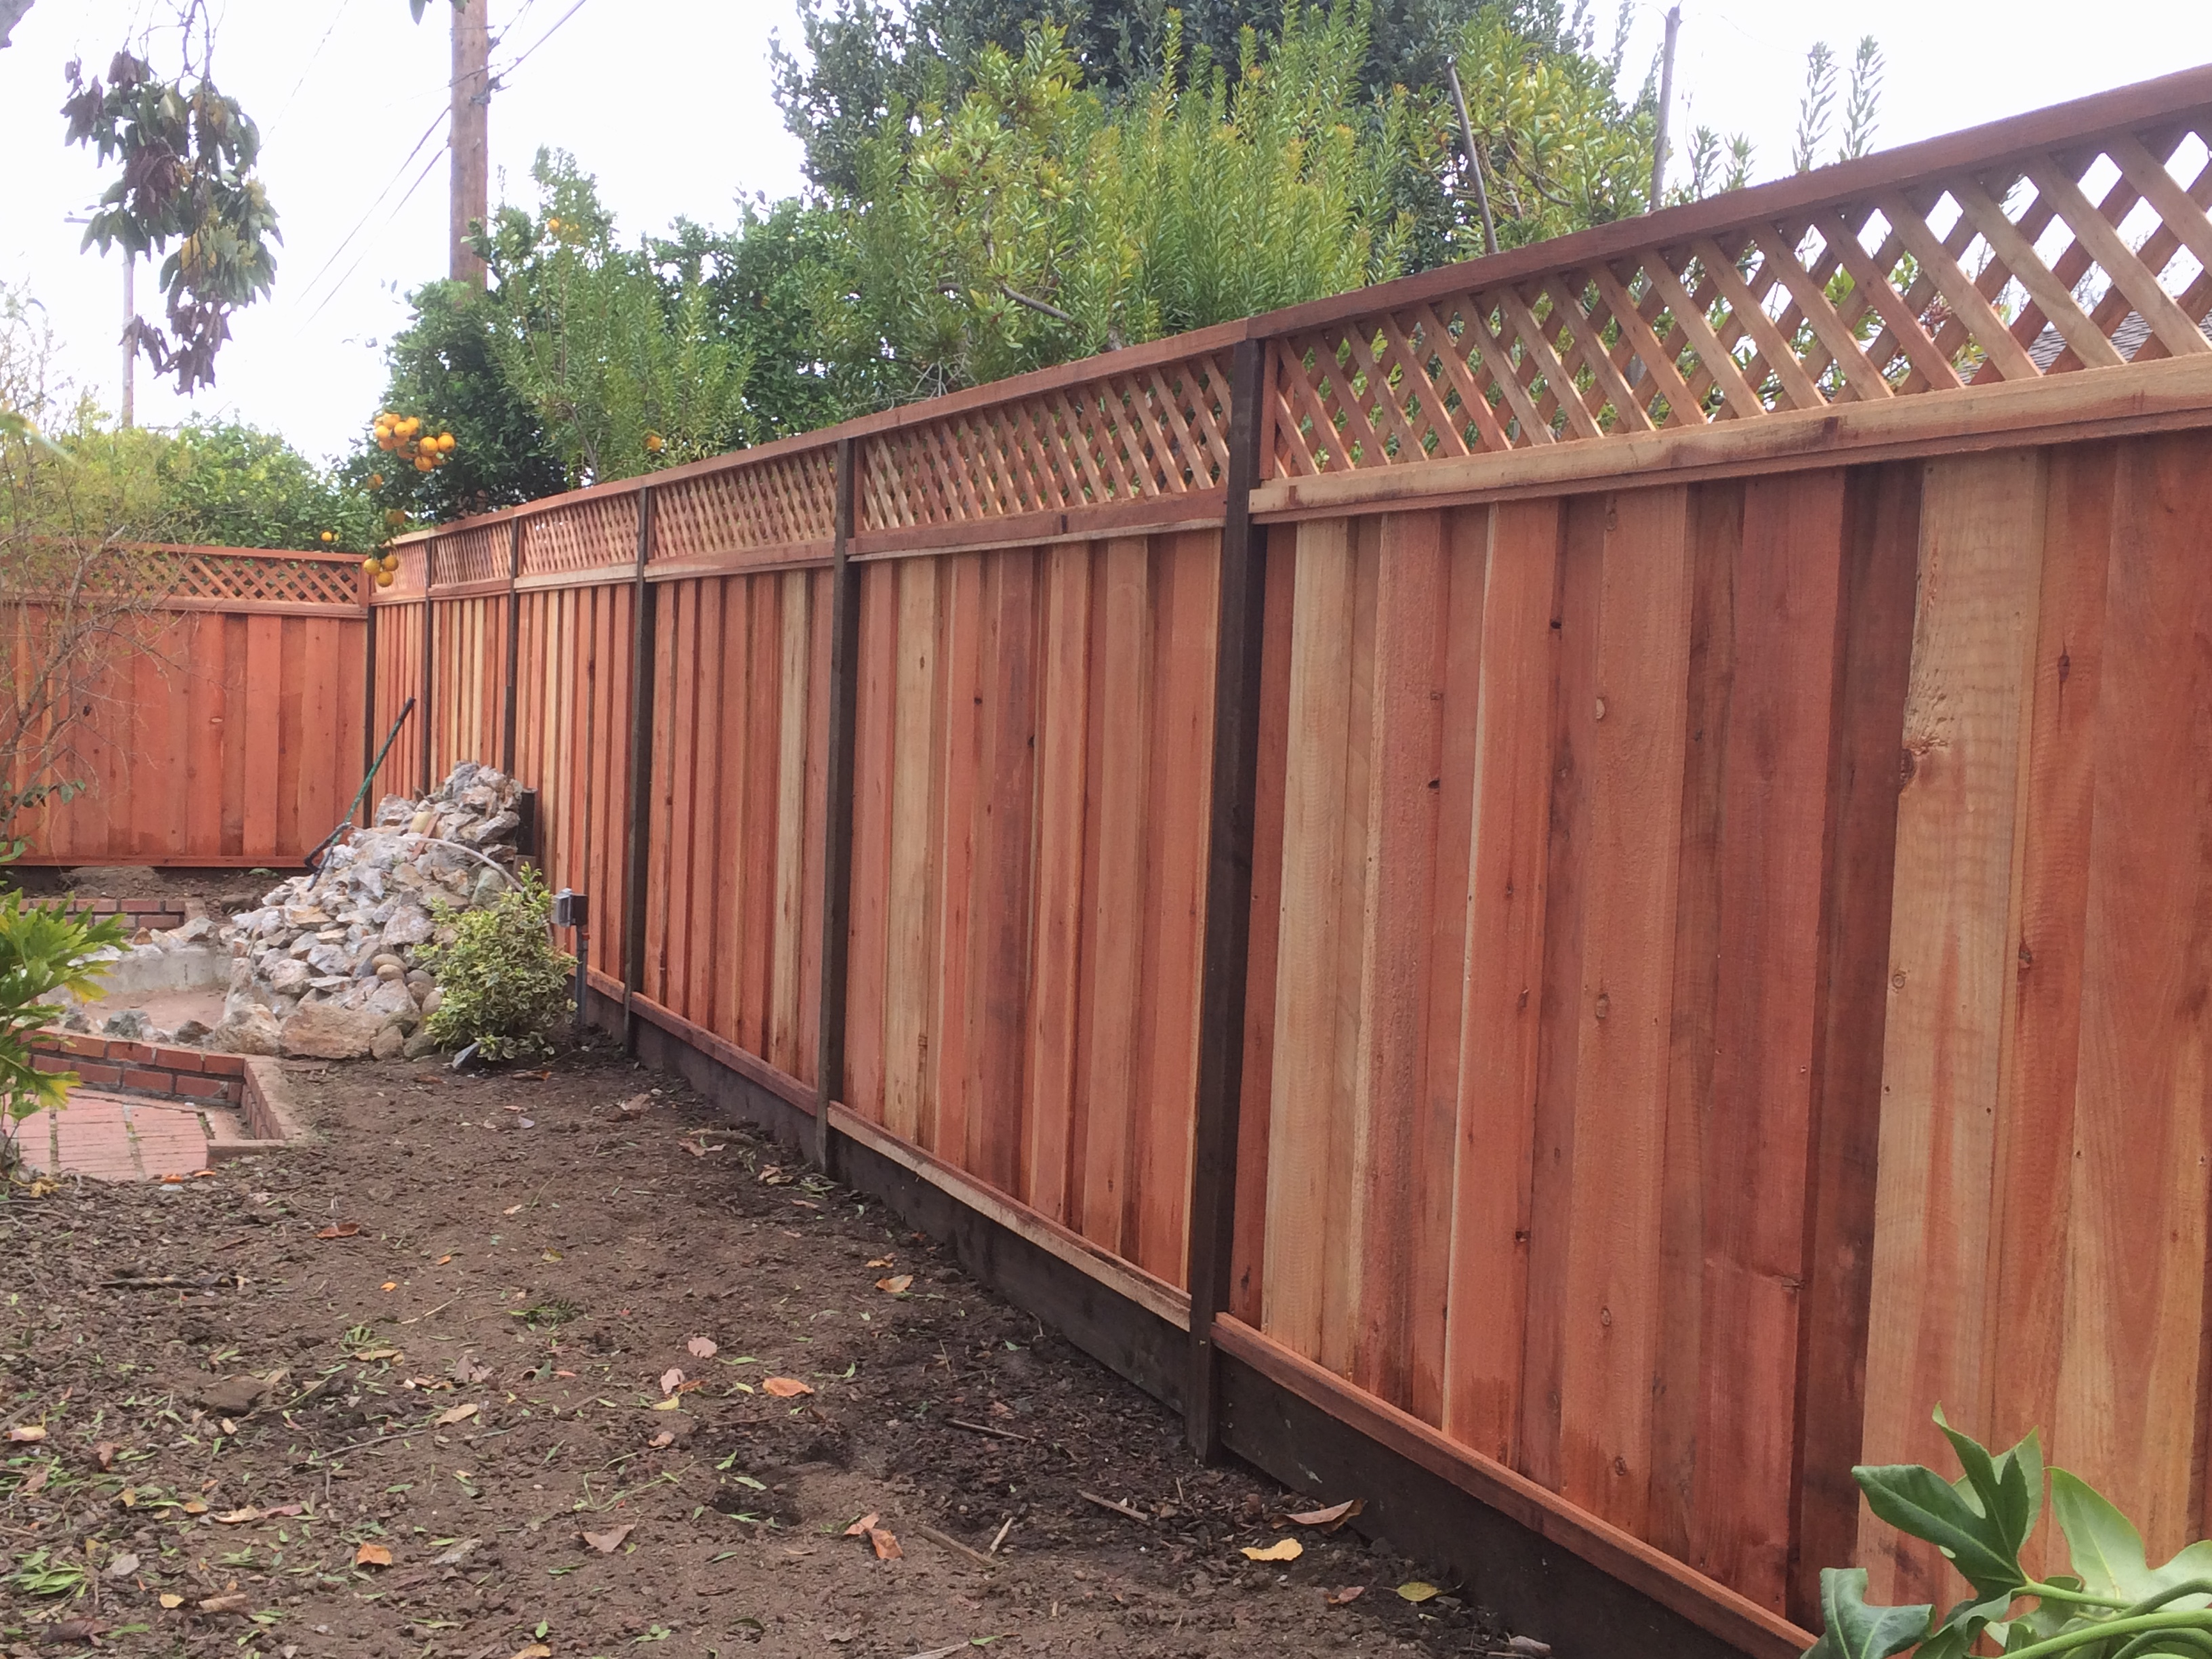 6' board on board fence with lattice